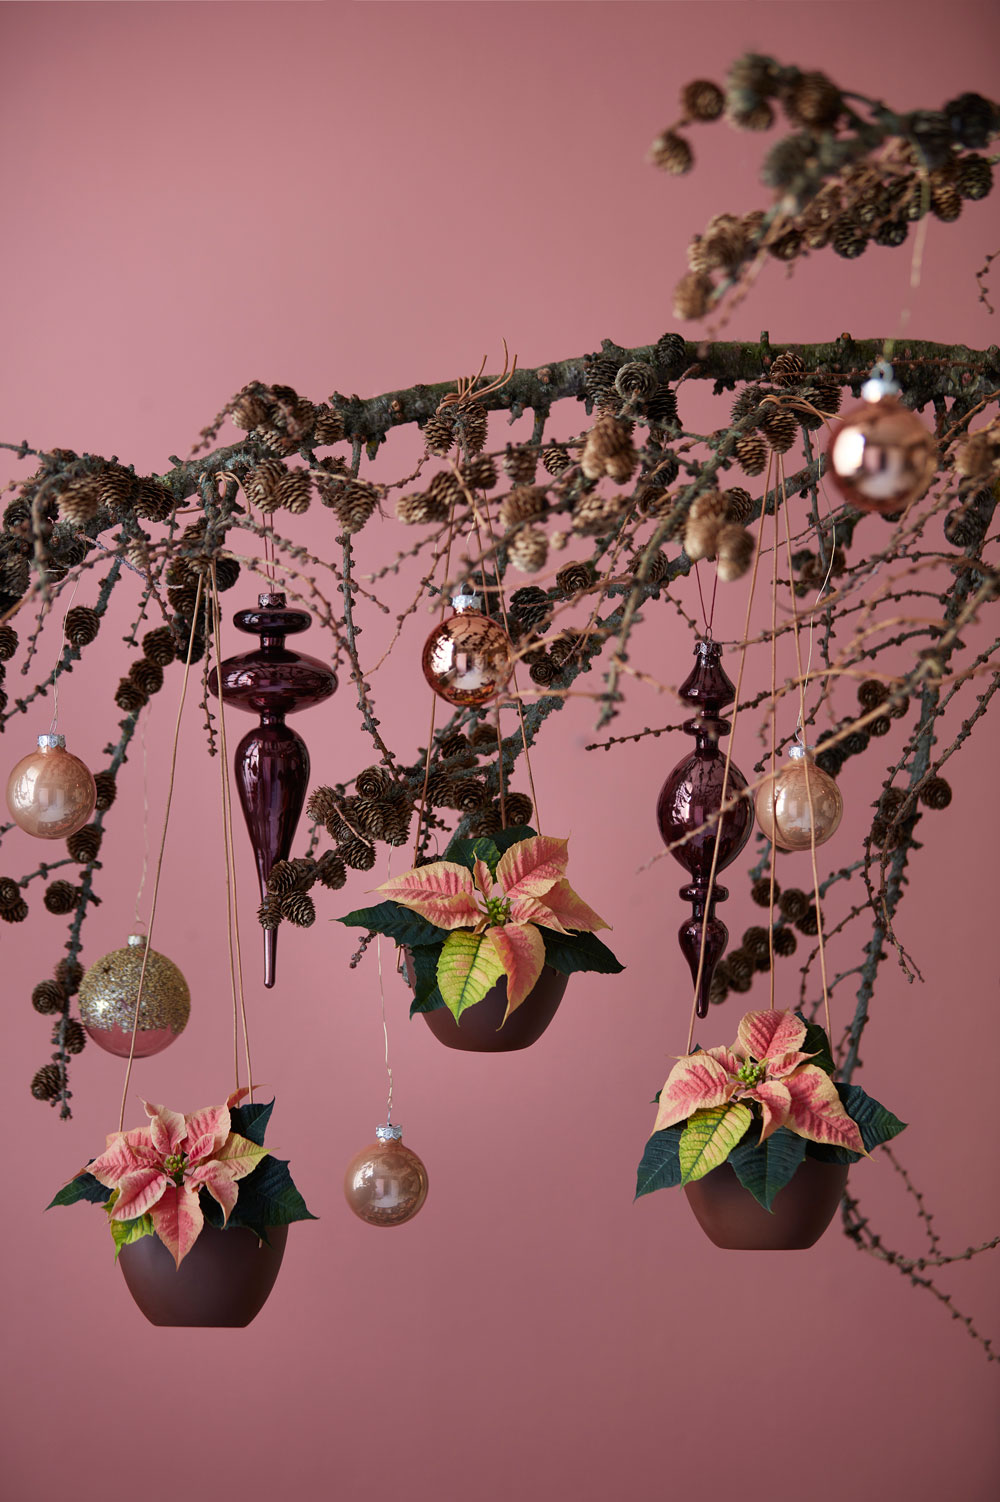 Hang small bowls of poinsettias from festive branches